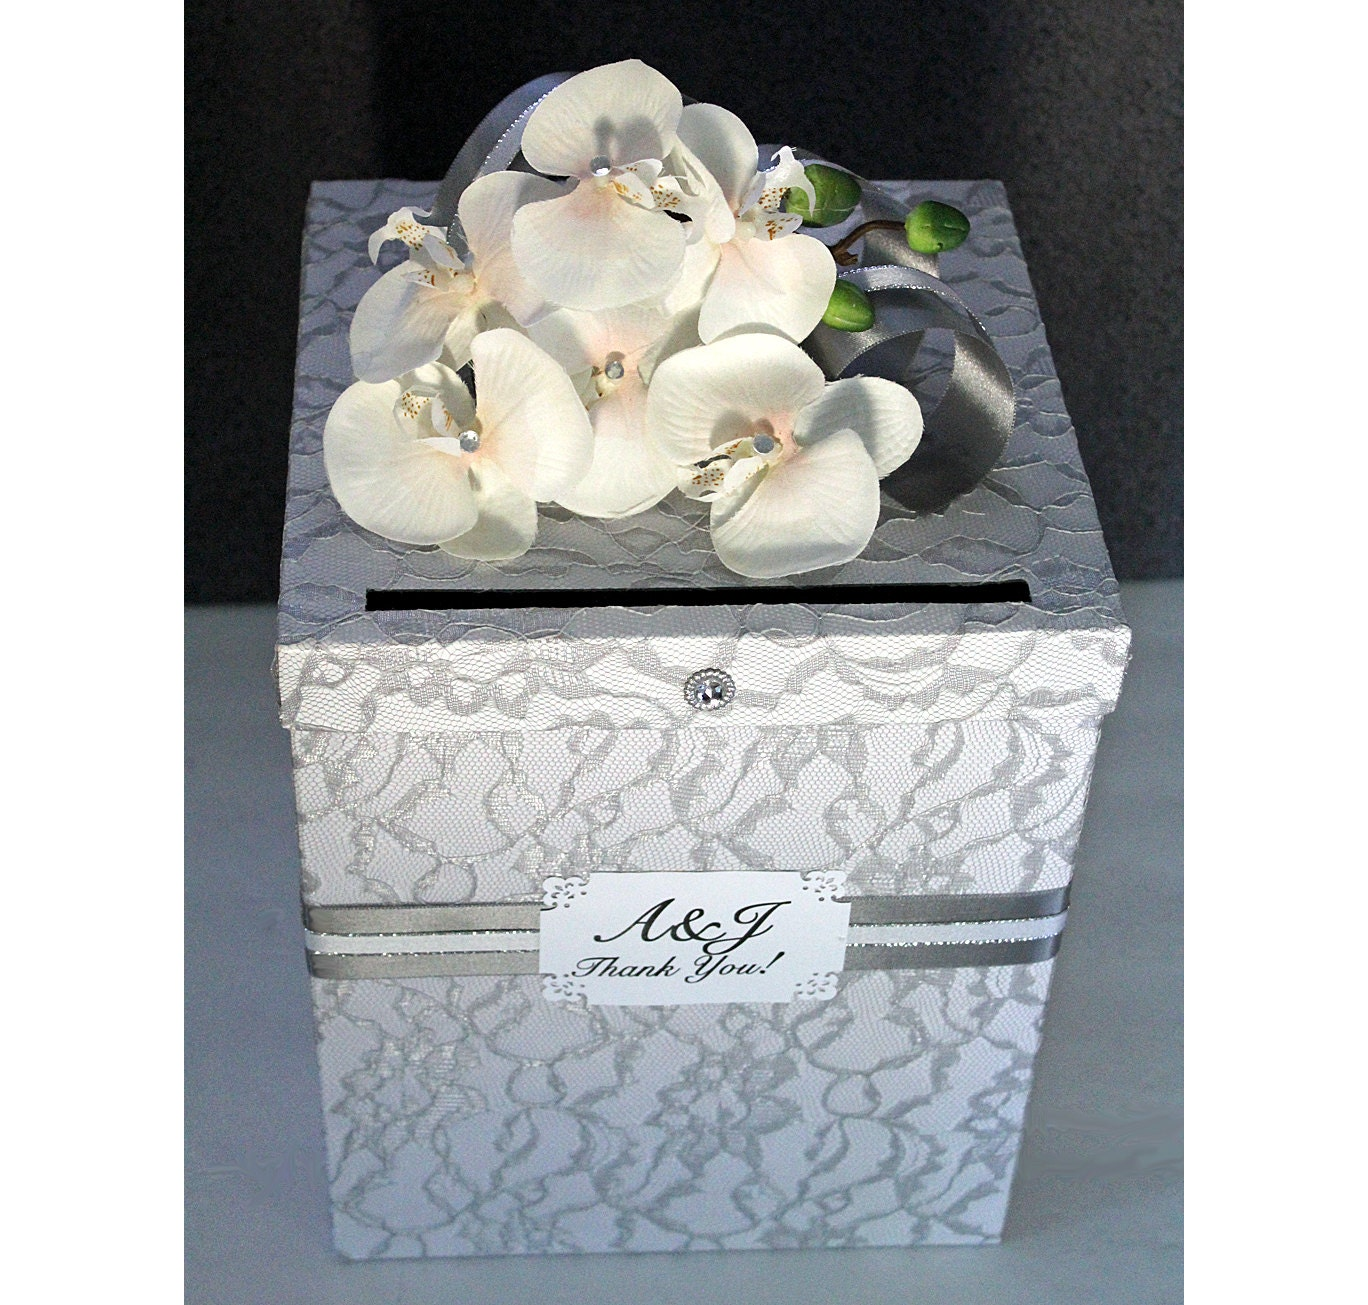 Items Similar To Wedding Card Box Silver Gray Lace Amp White Single Tier Wedding Card Holder